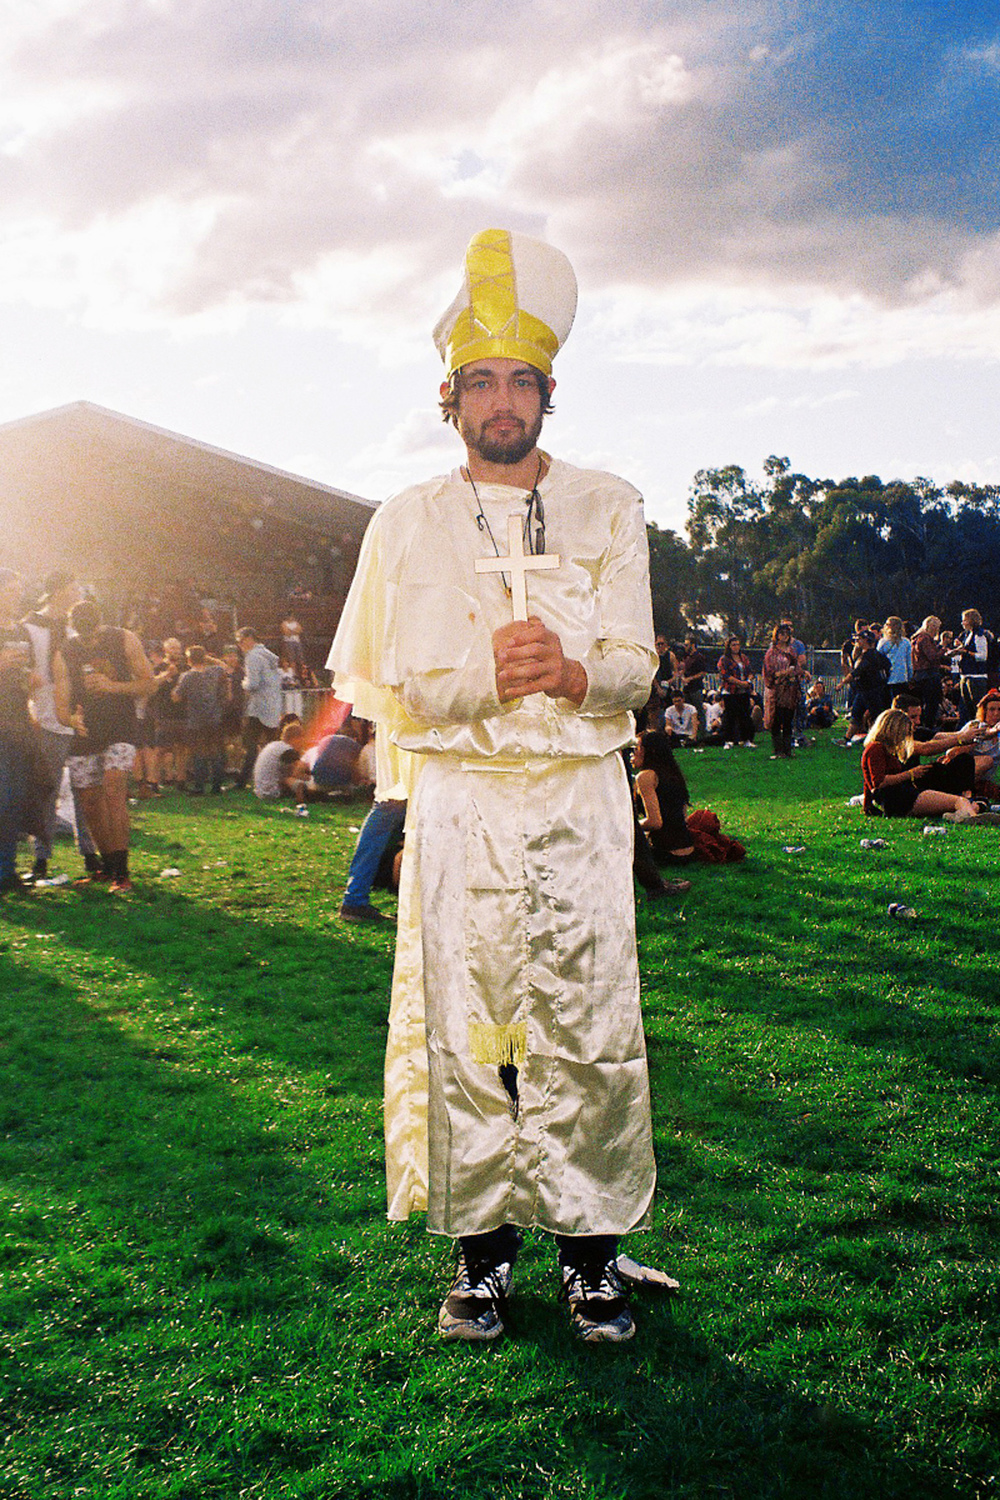 VOENA_GROOVIN_THE_MOO_CANBERRA_FILM_2015_35MM_PHOTOS-11.jpg